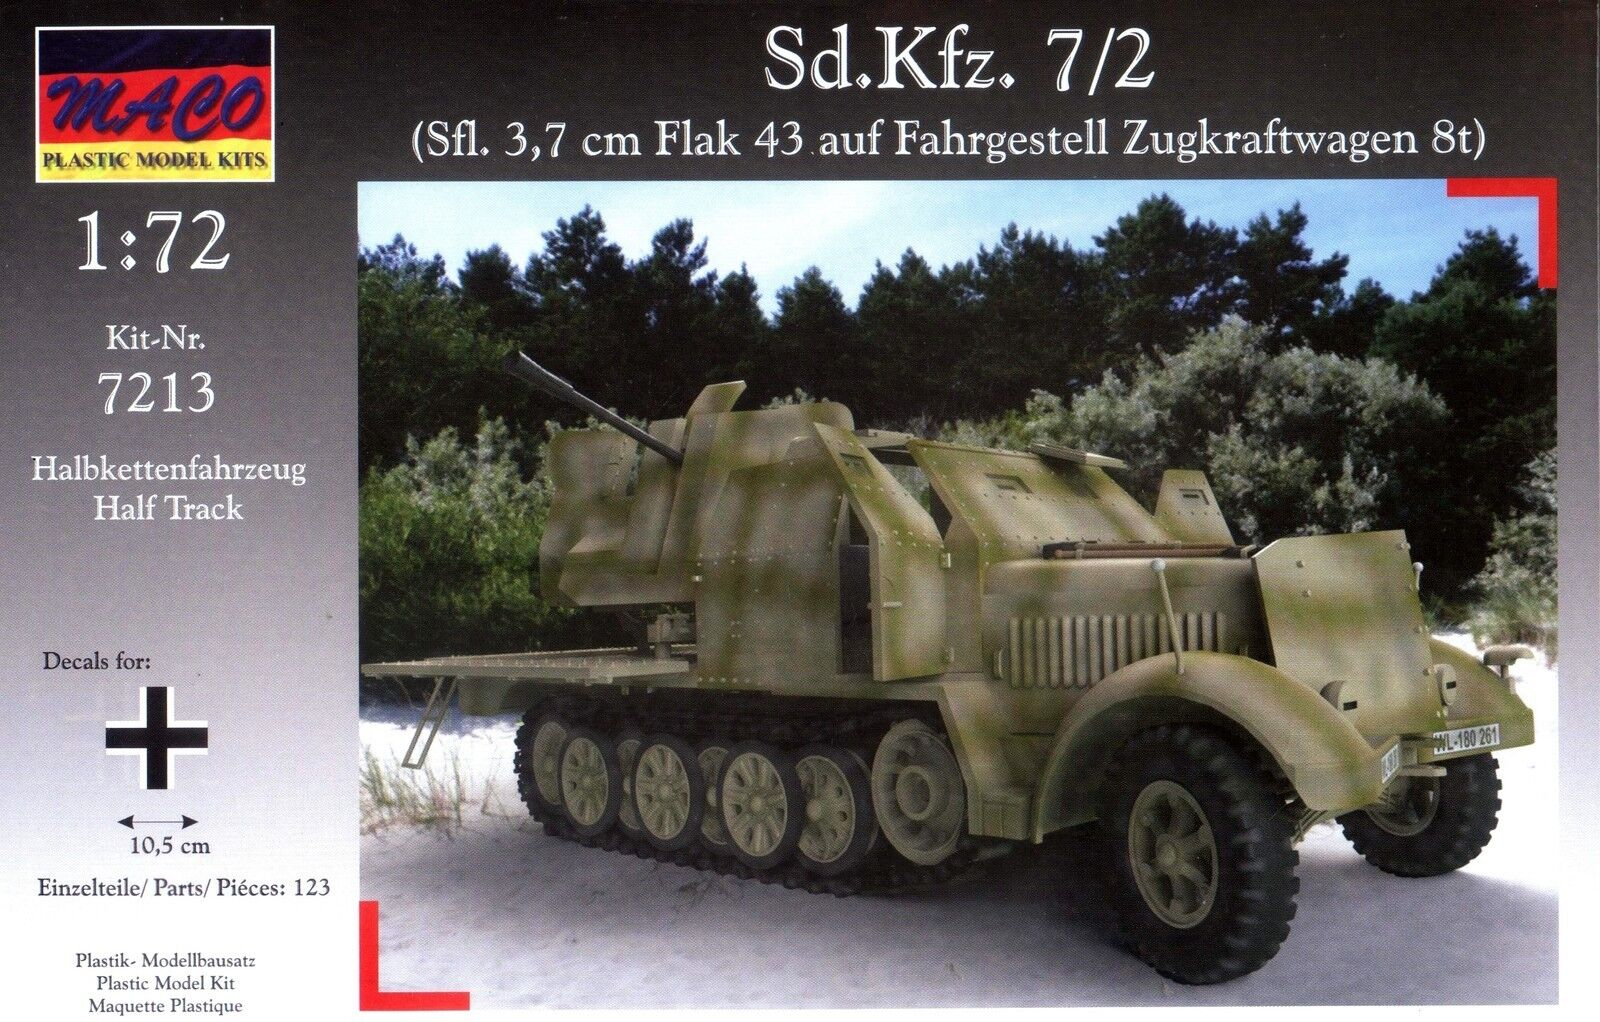 MACO 1 72 7213 WWII German Sd.Kfz.7 2 3.7cm Flak 43 Self-Propelled AA Gun